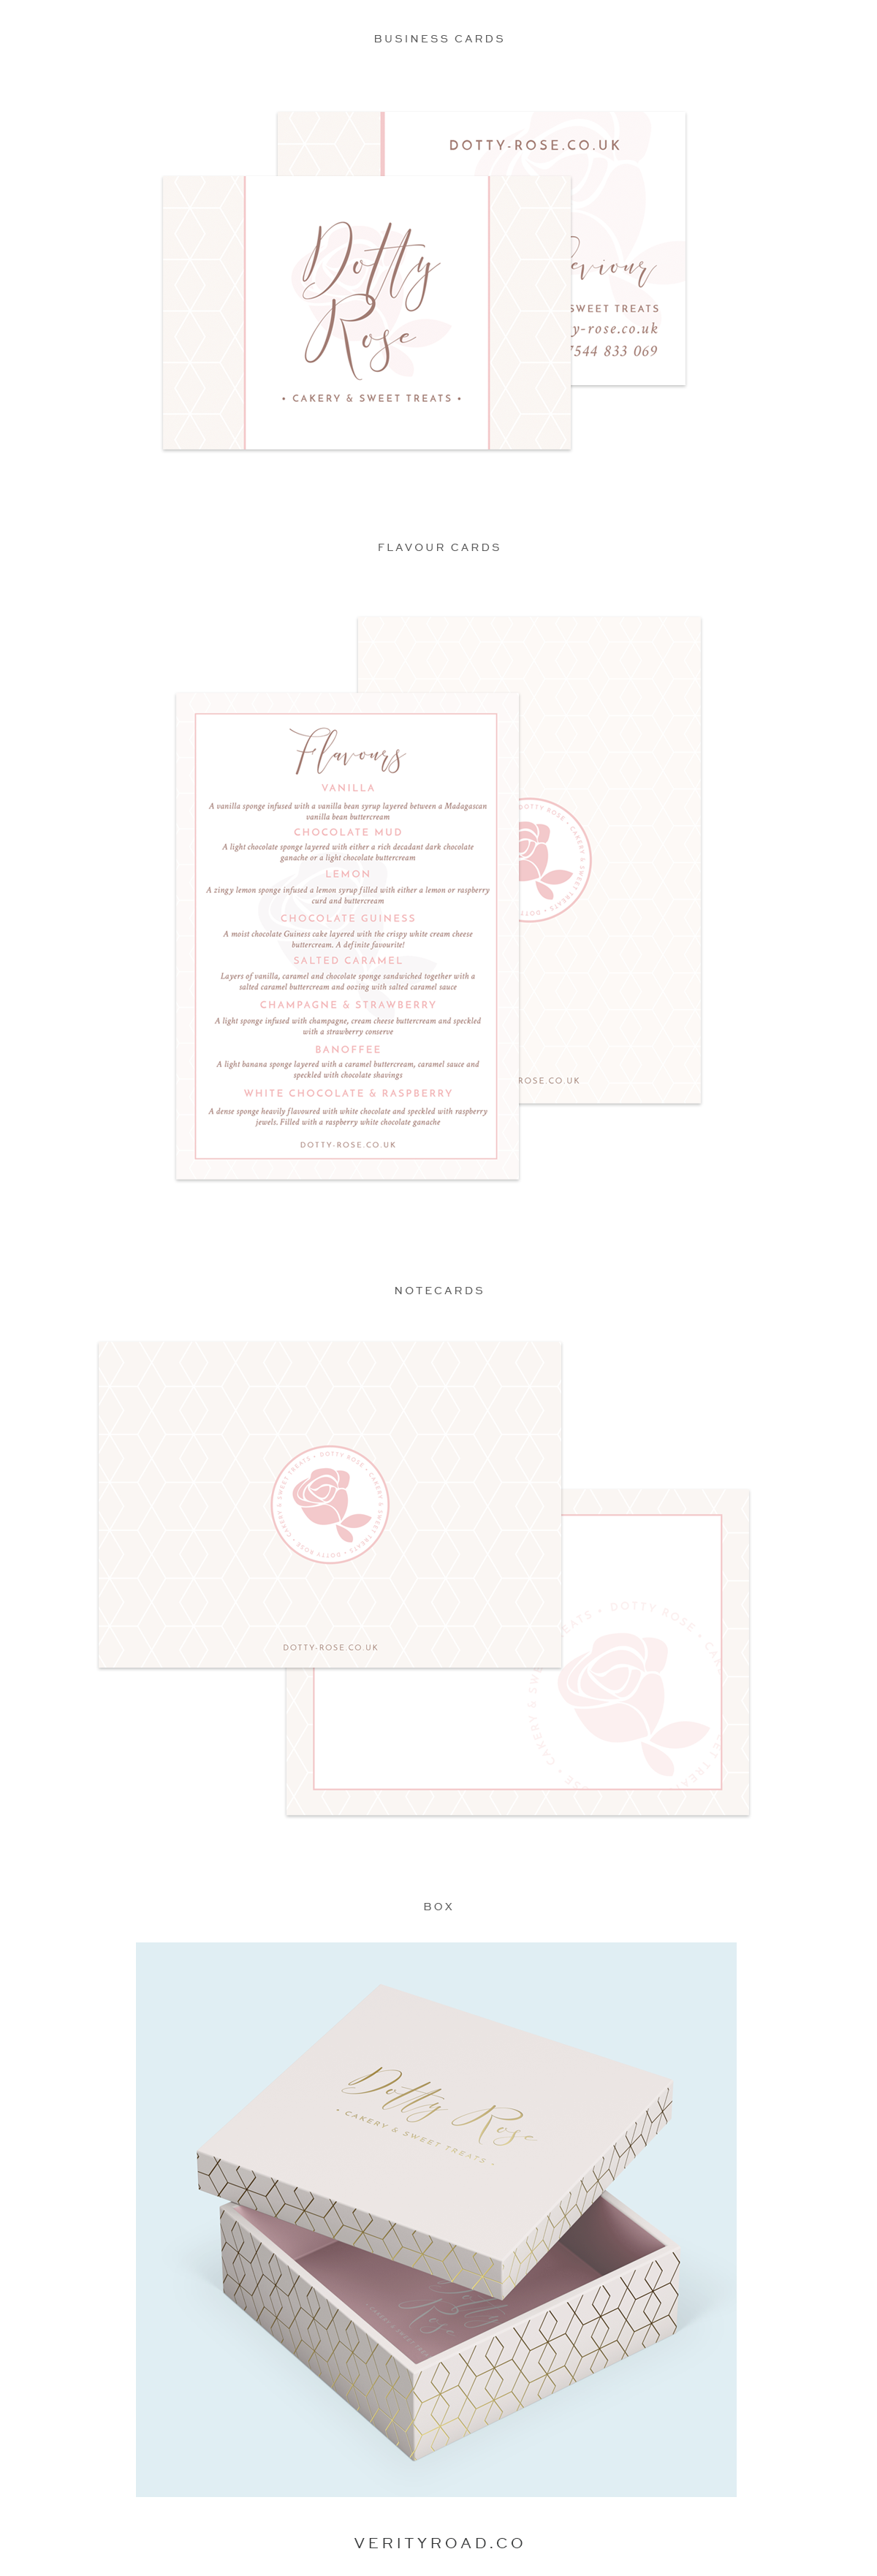 branding, branded print materials, business cards, packaging, flavour card,for dotty rose cakery and sweet treats, wedding professional, wedding business, wedding cake designer,luxury brand styling and web design for female entrepreneurs. pastel color palette, blue, pink, floral inspiration, watercolor, geometric pattern, business owner, blogger. See more for brand board, brand style guide, social media branding and web design.